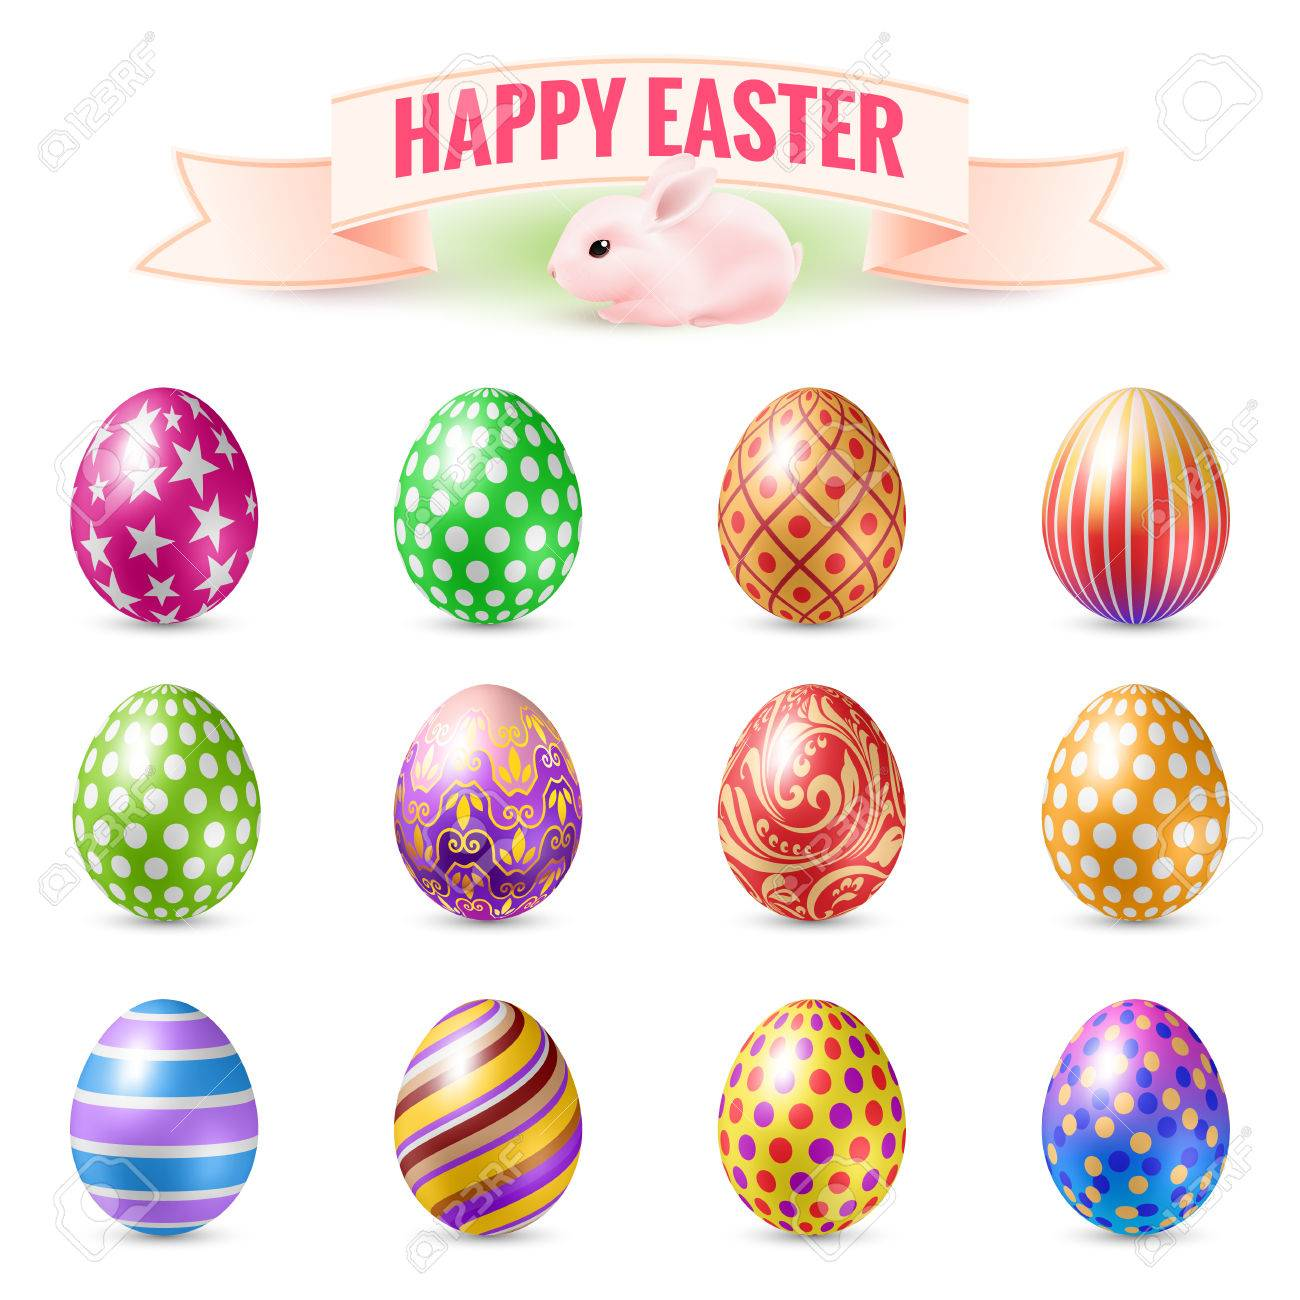 set of vintage easter eggs design templates objects for easter